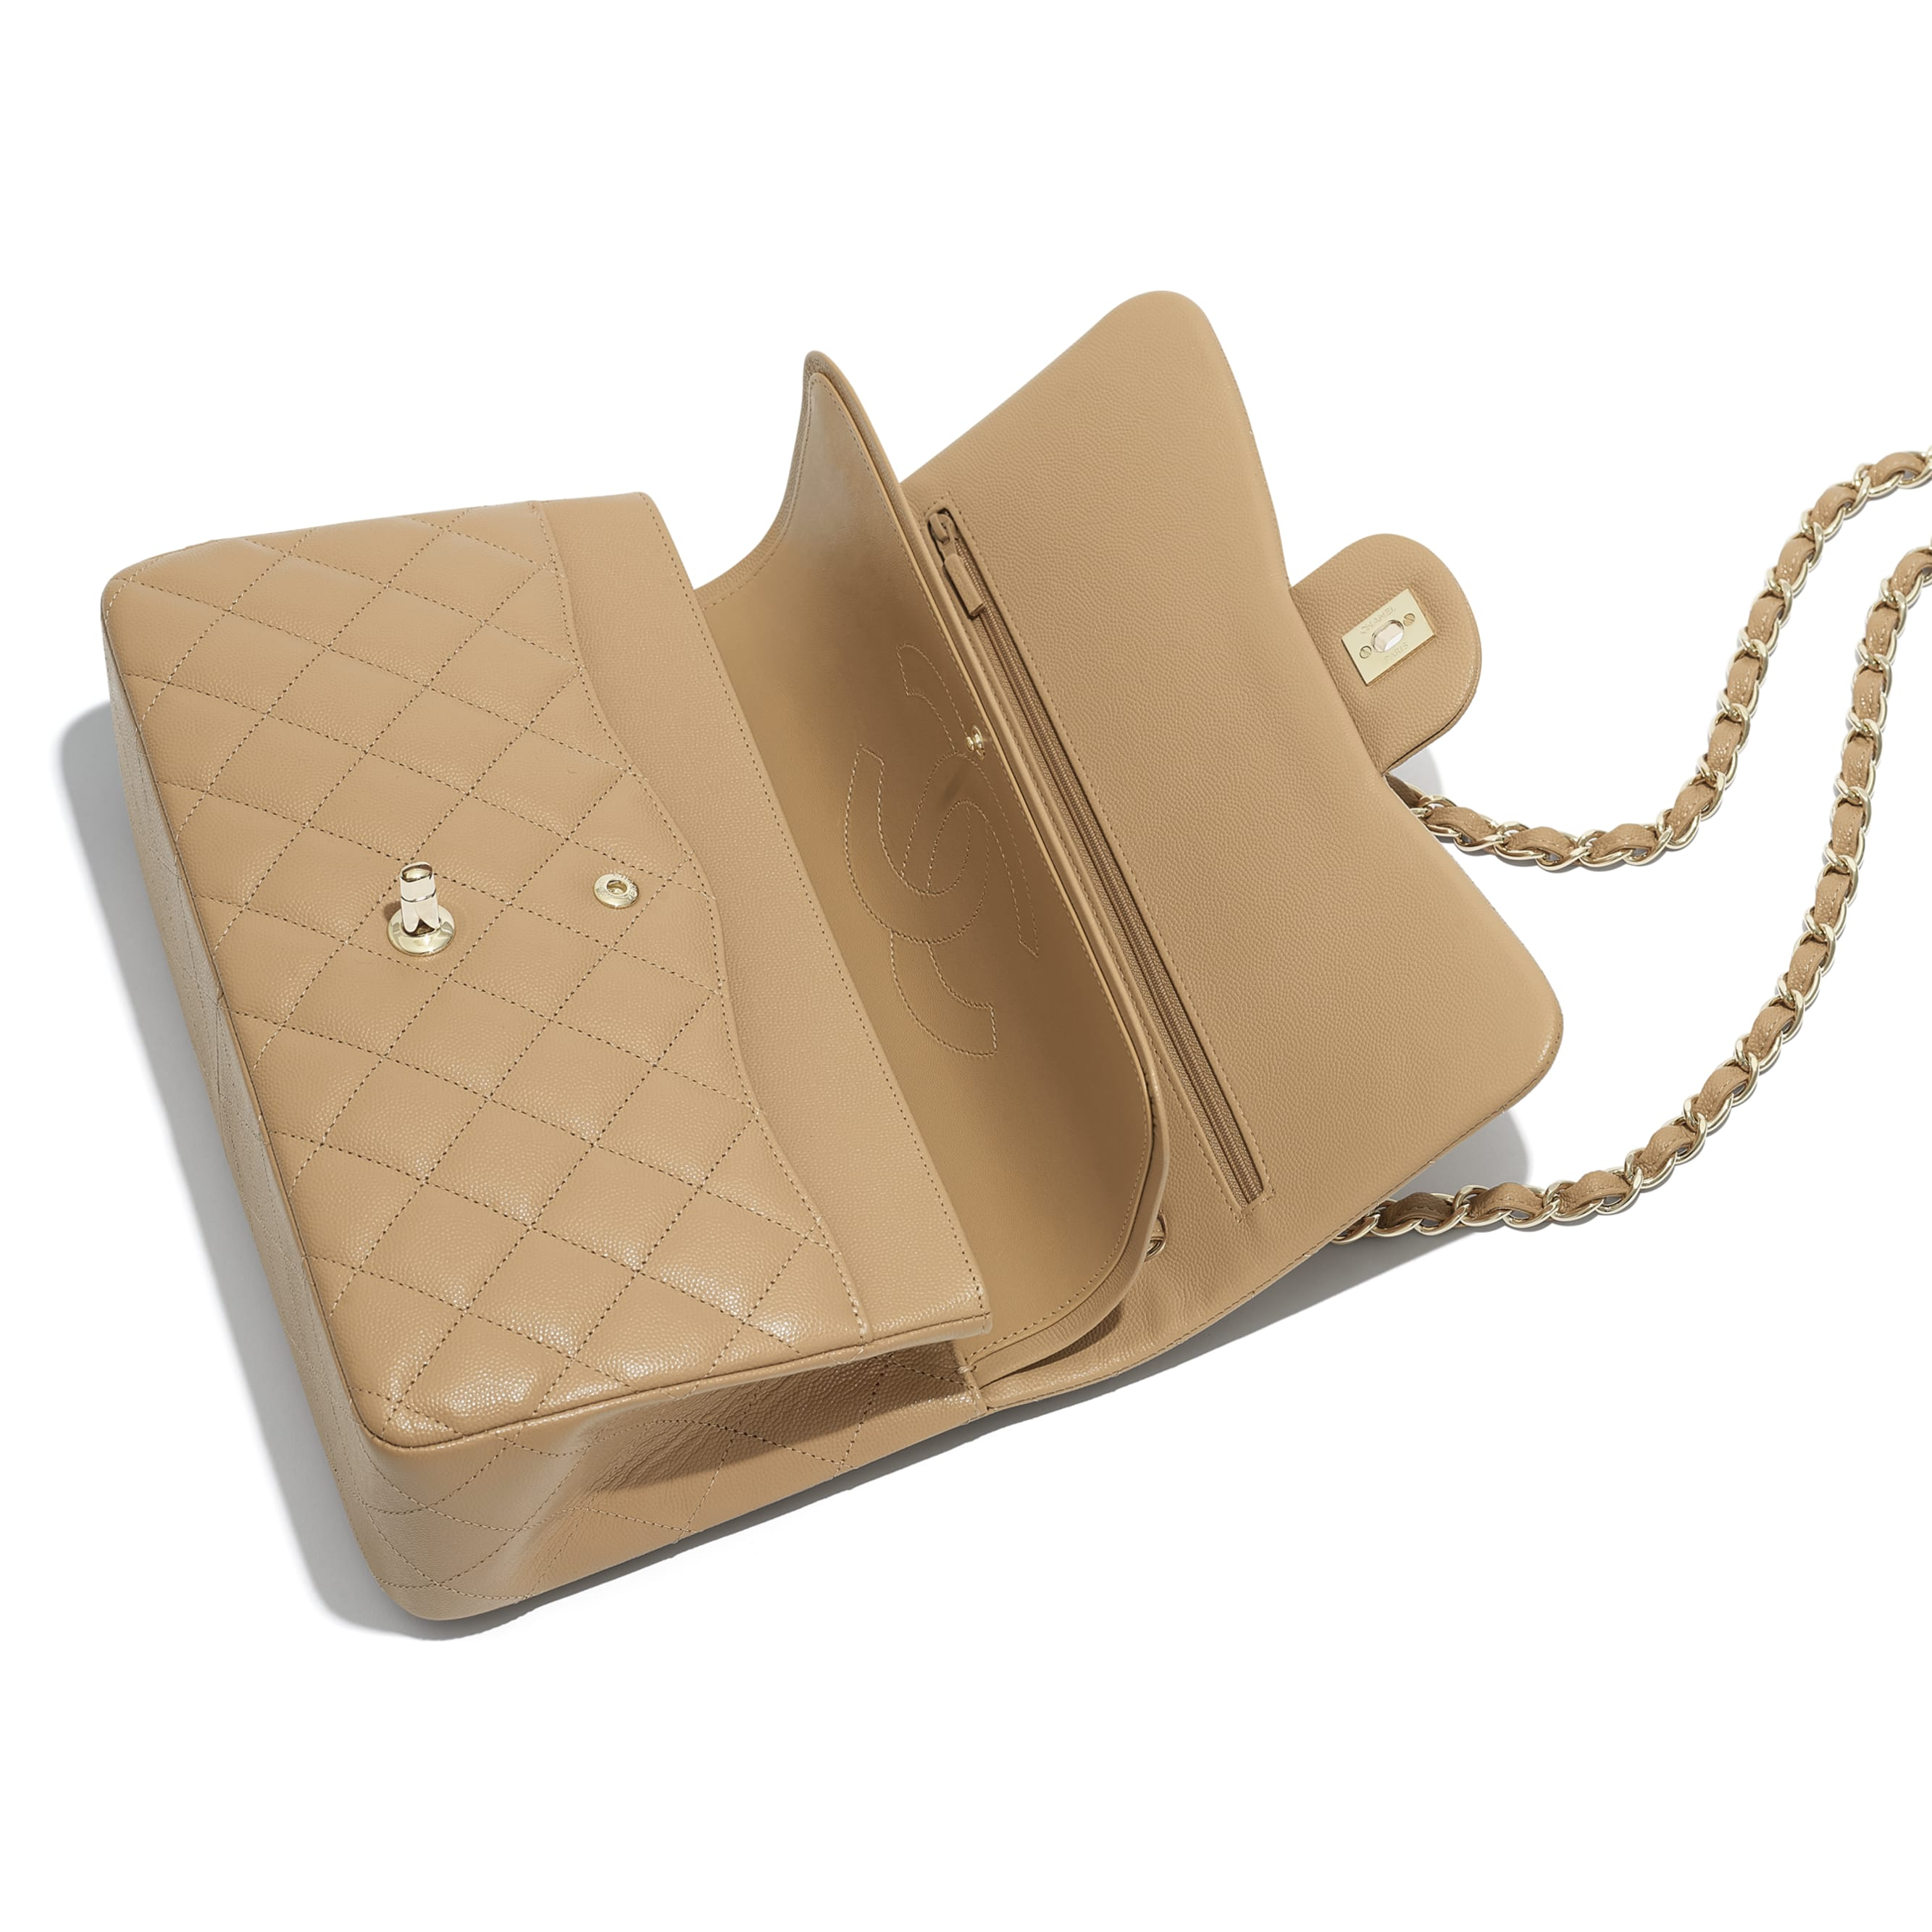 Large Classic Handbag - Beige - Grained Calfskin & Gold-Tone Metal - Other view - see standard sized version